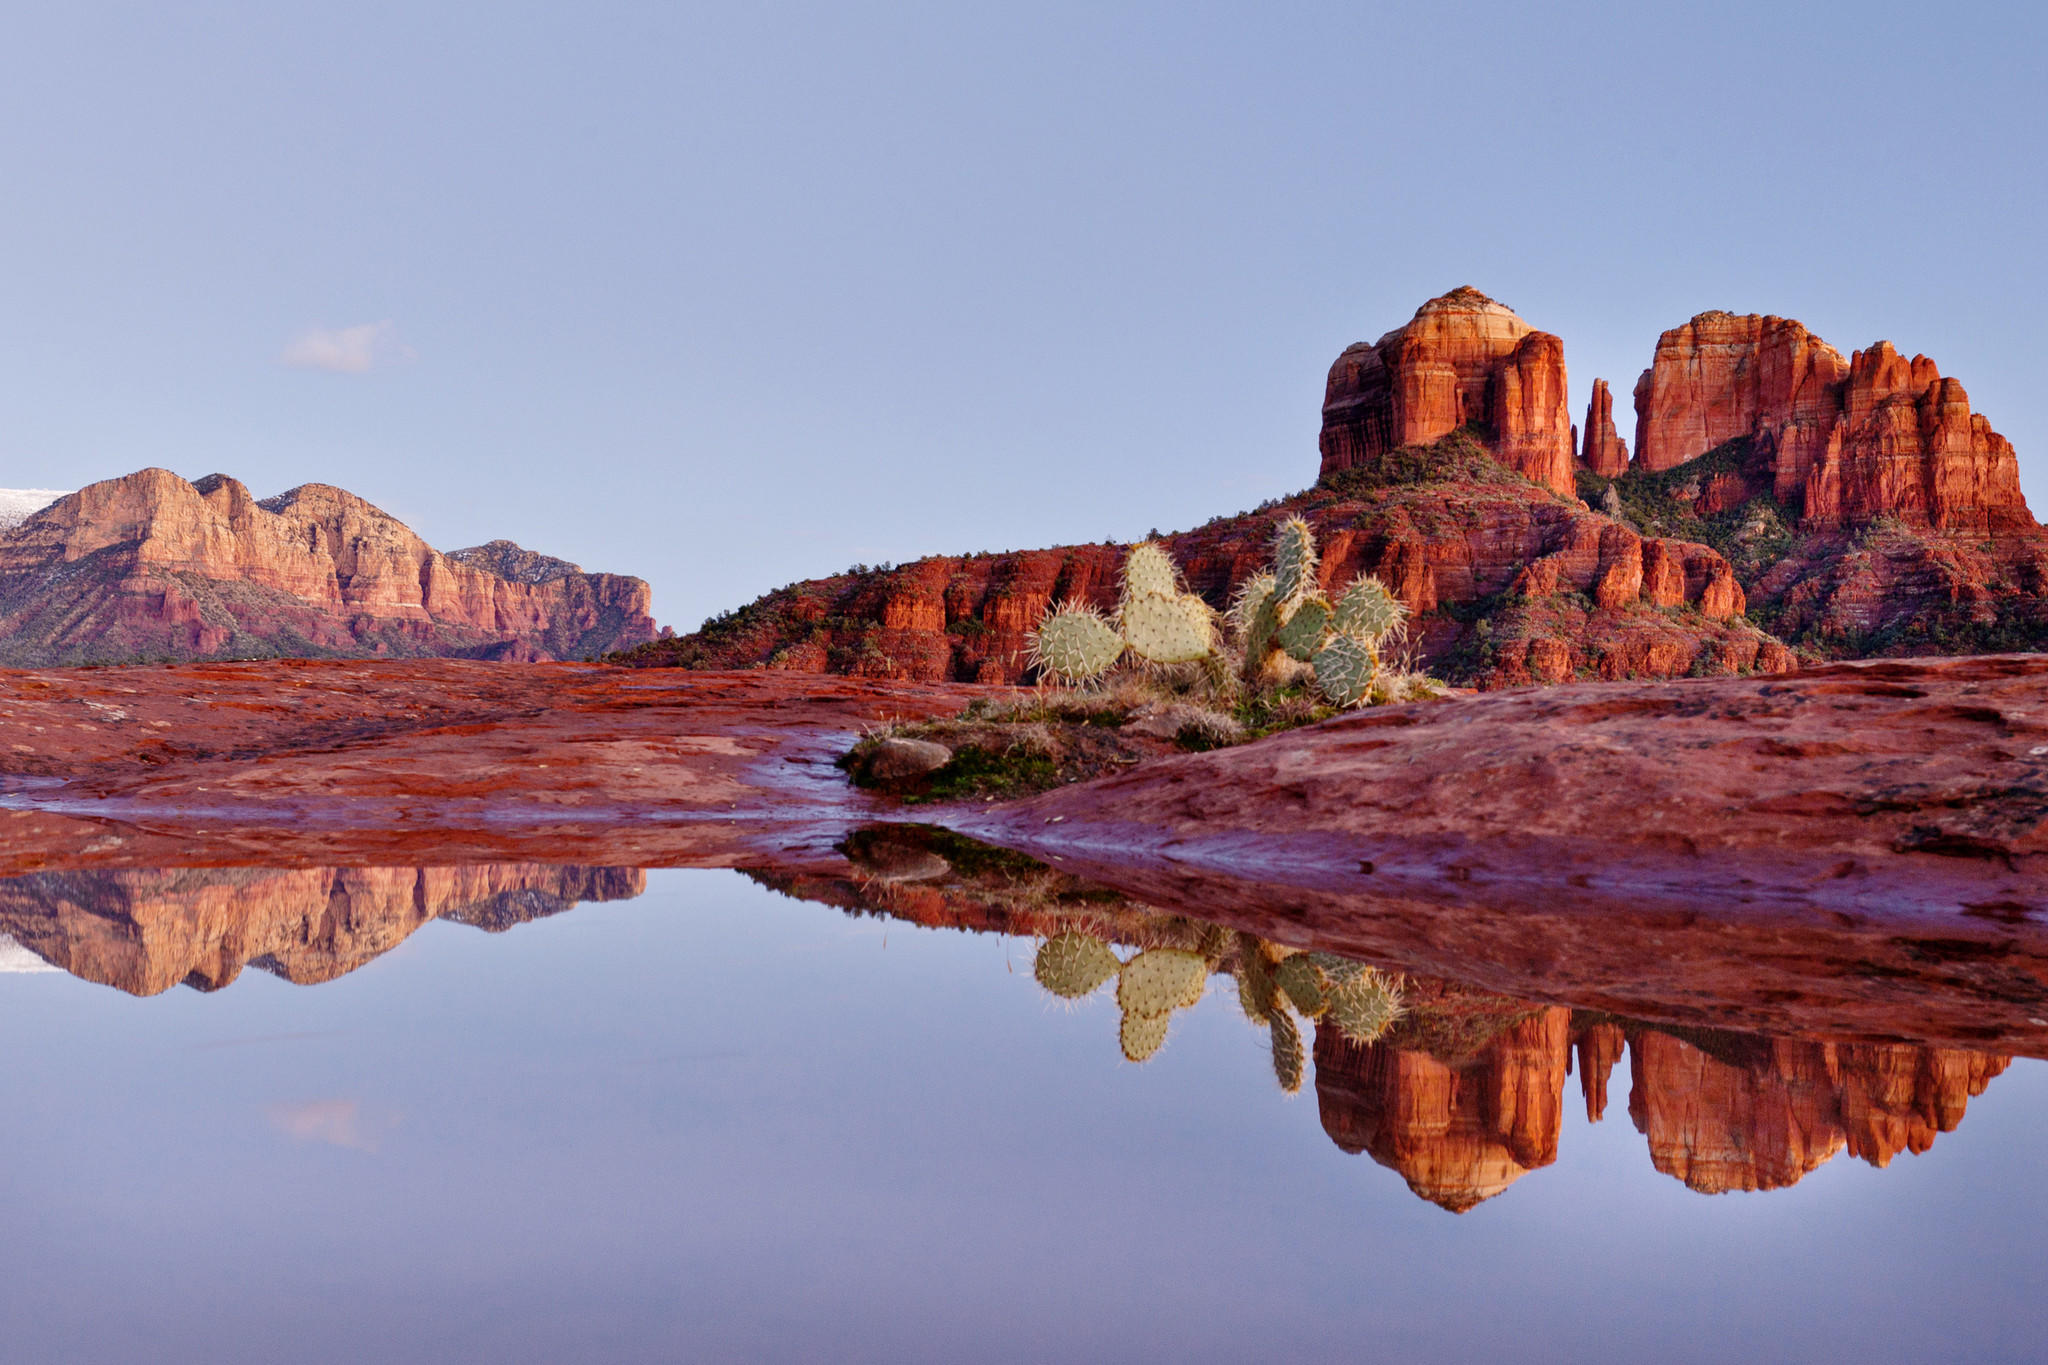 Cathedral rock is reflected in a rain pool. (Dougberry / Getty Images)